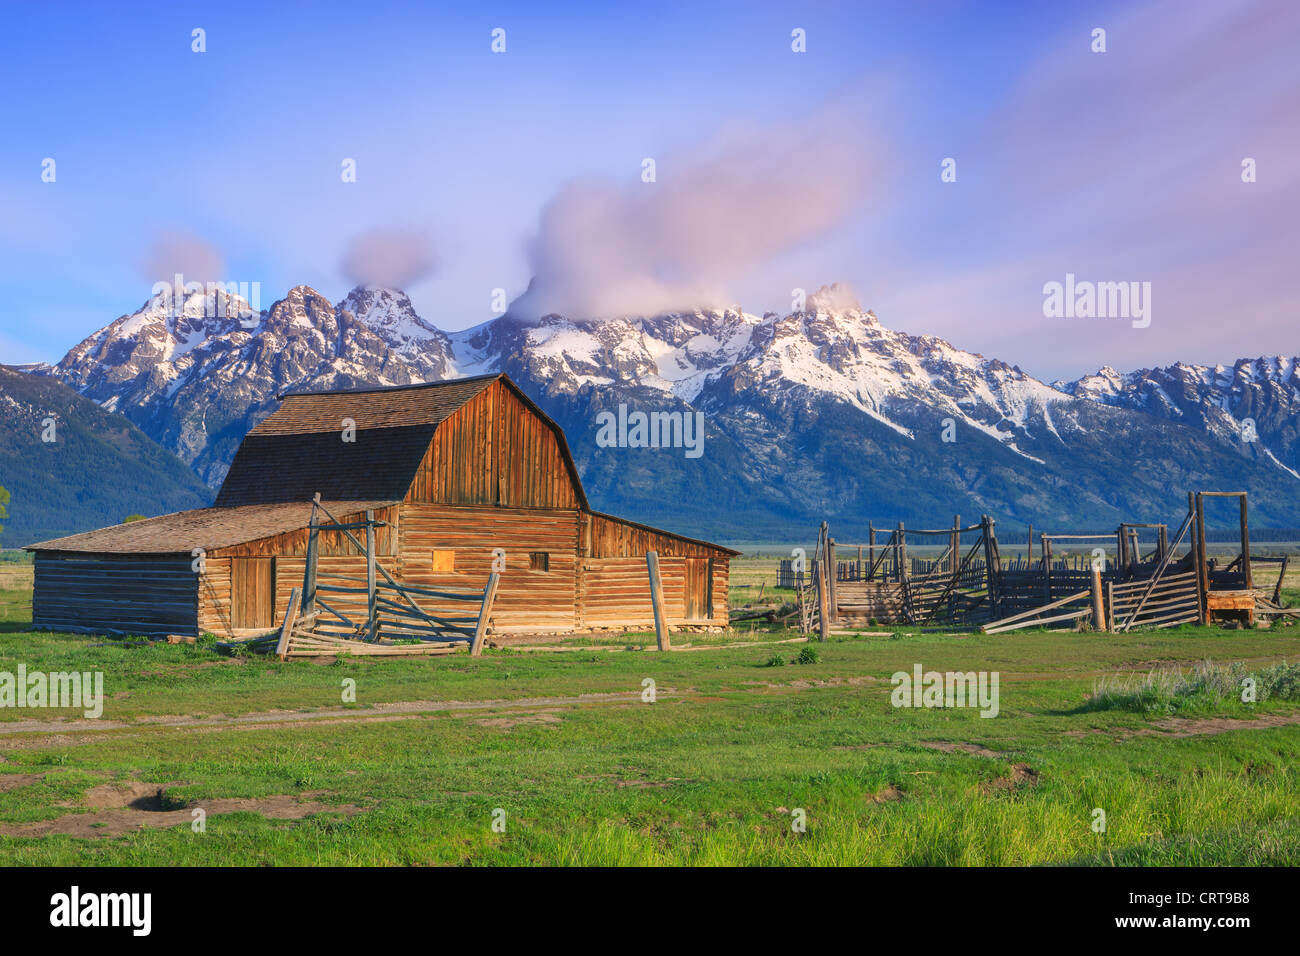 T.A Moulton Barn à Grand Teton National Park Photo Stock